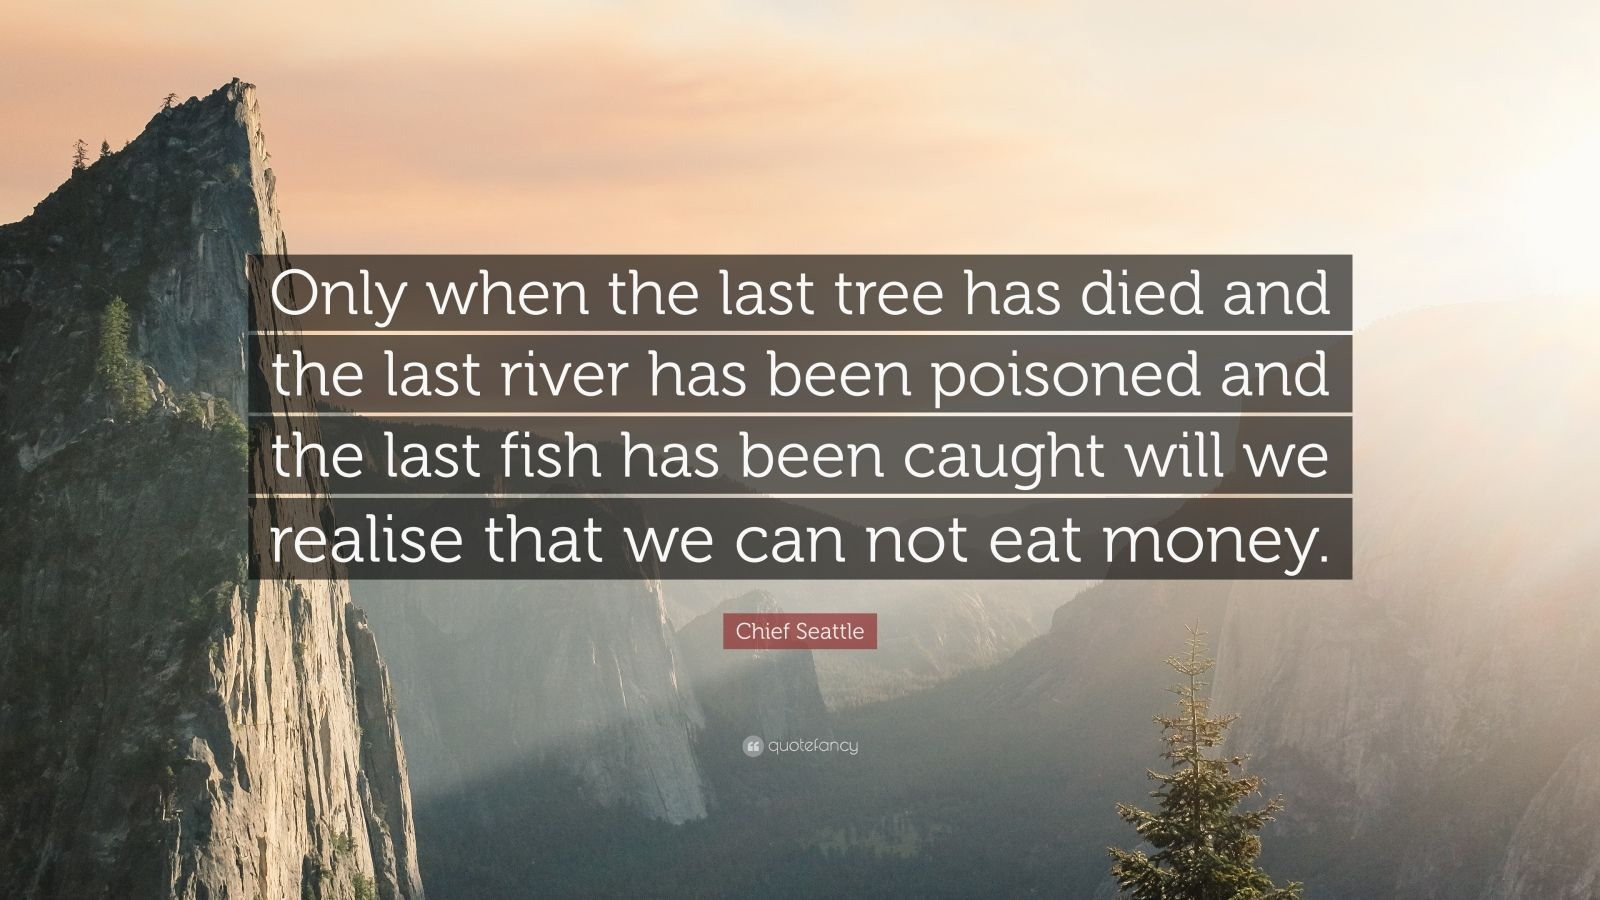 Spirit Science Quotes Wallpapers Chief Seattle Quote Only When The Last Tree Has Died And